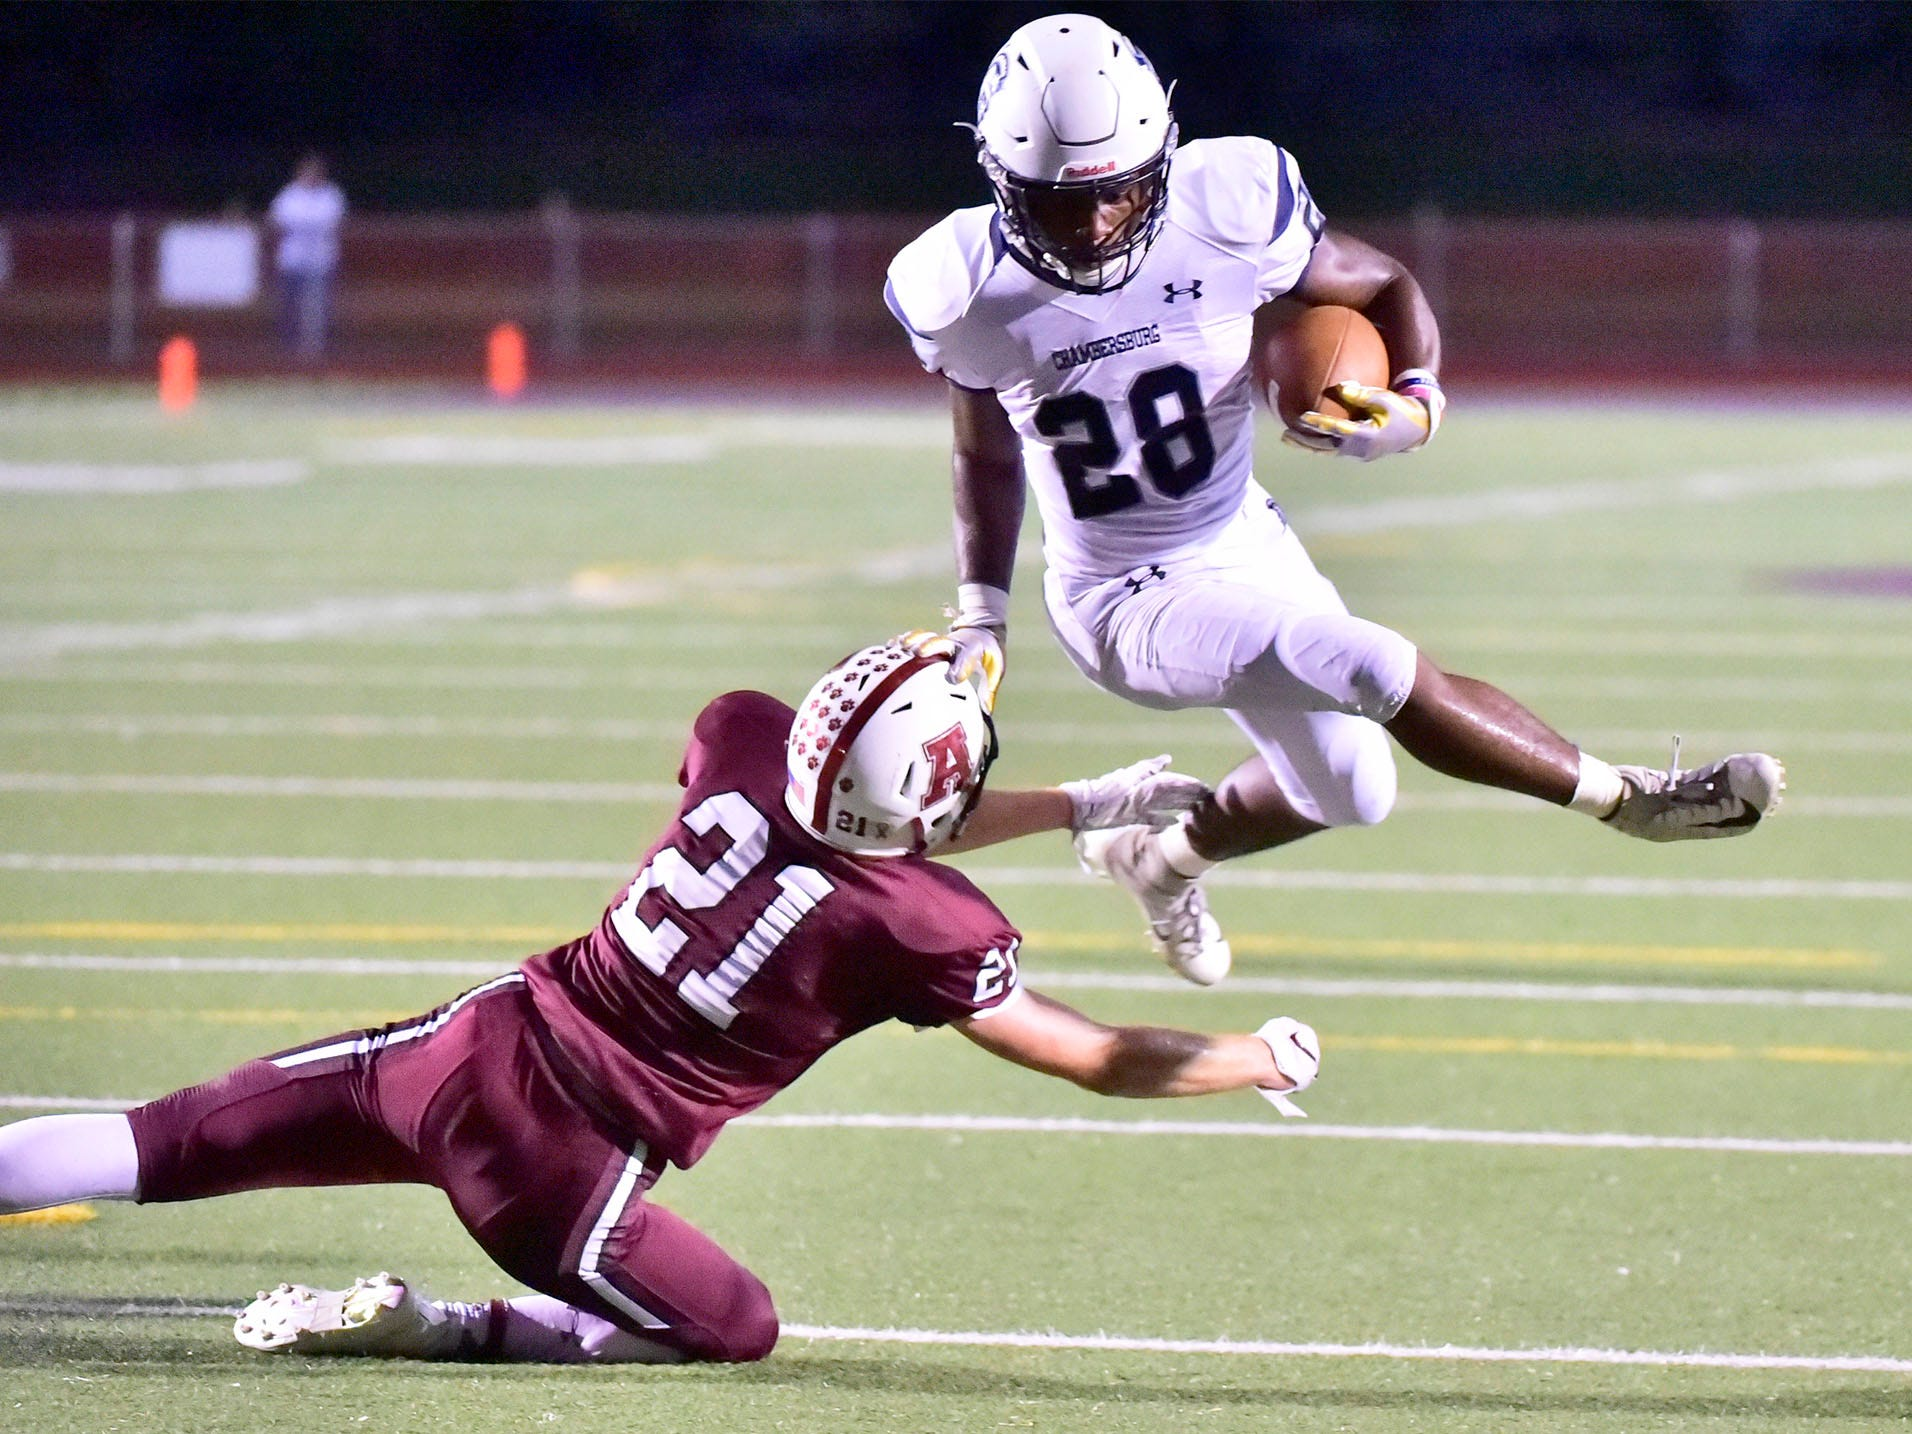 Chambersburg's Keyshawn Jones (28) leaps over Altoona's Connor Adams (21) to score for the Trojans. Chambersburg defeated Altoona 48-28 in PIAA football to move to 4-0 on Friday, Sept. 14, 2018.